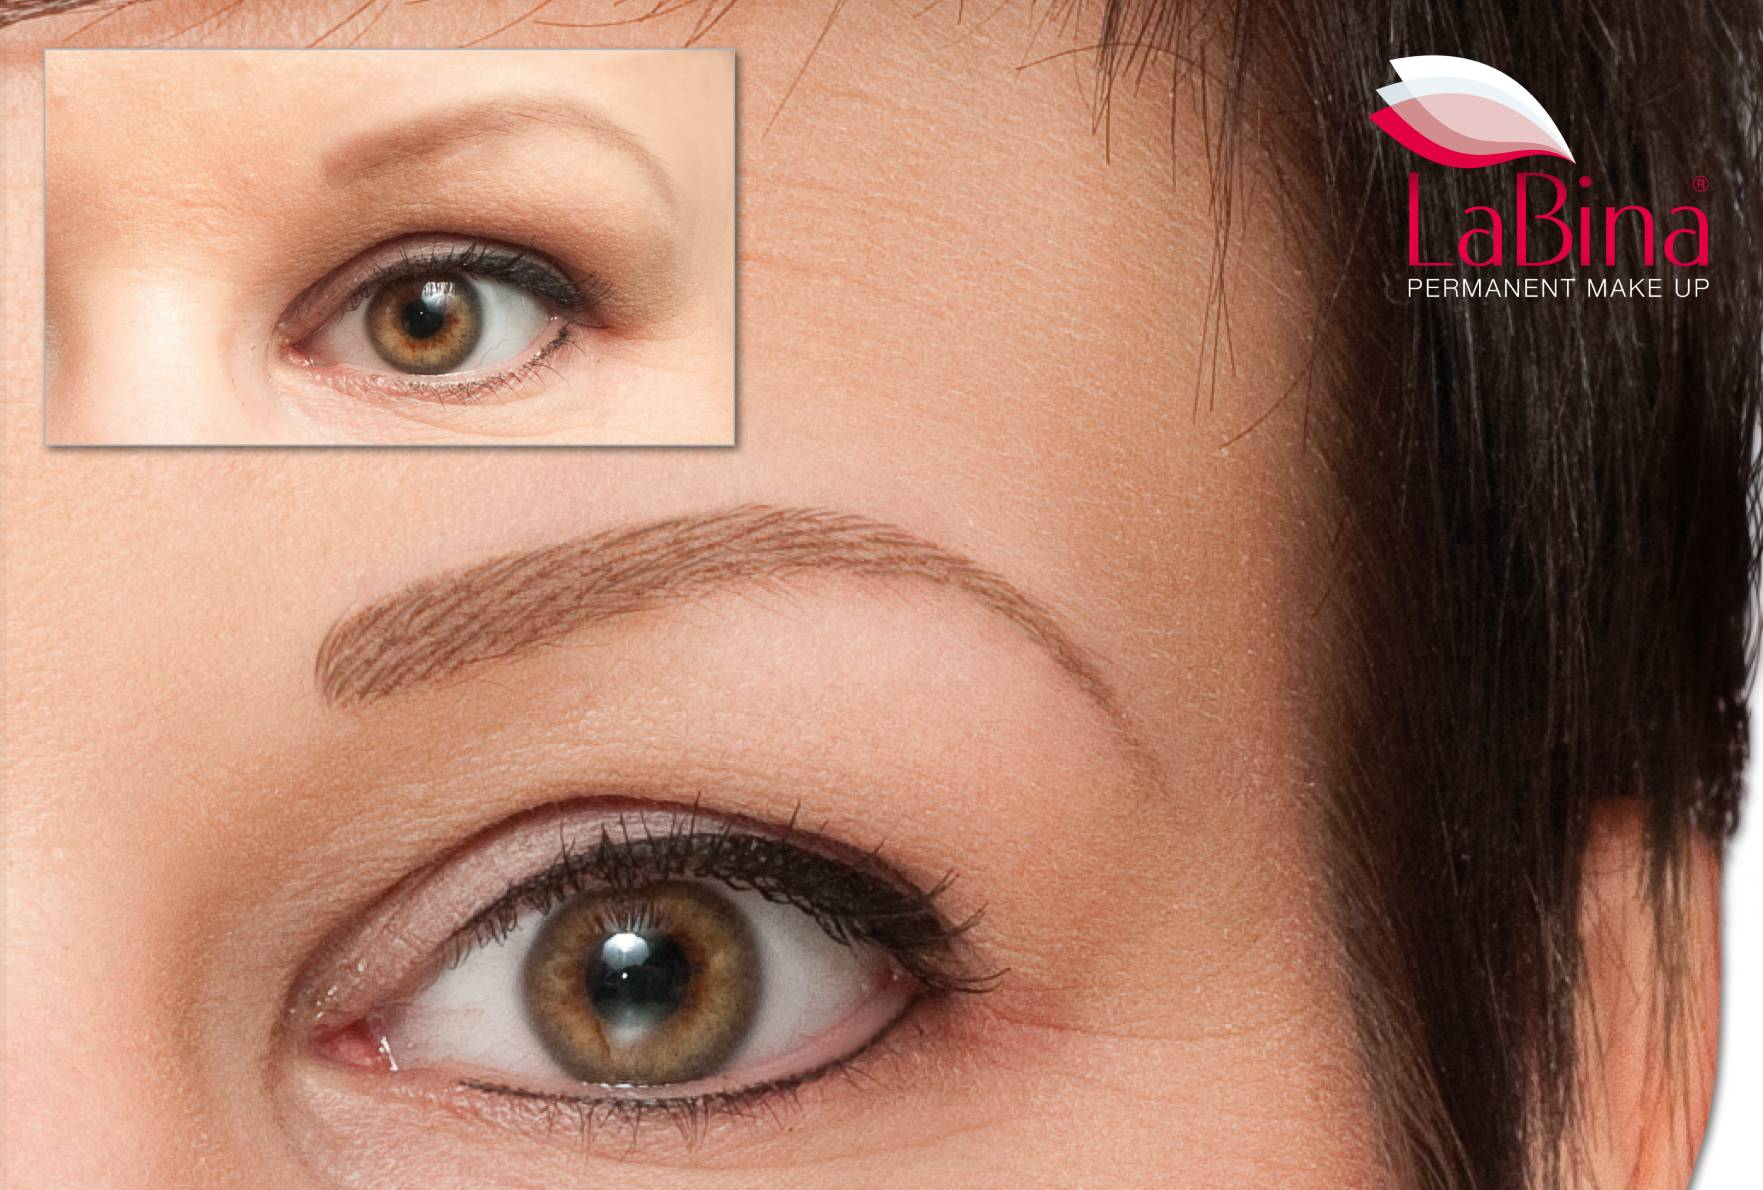 Permanent Make-up Gauting